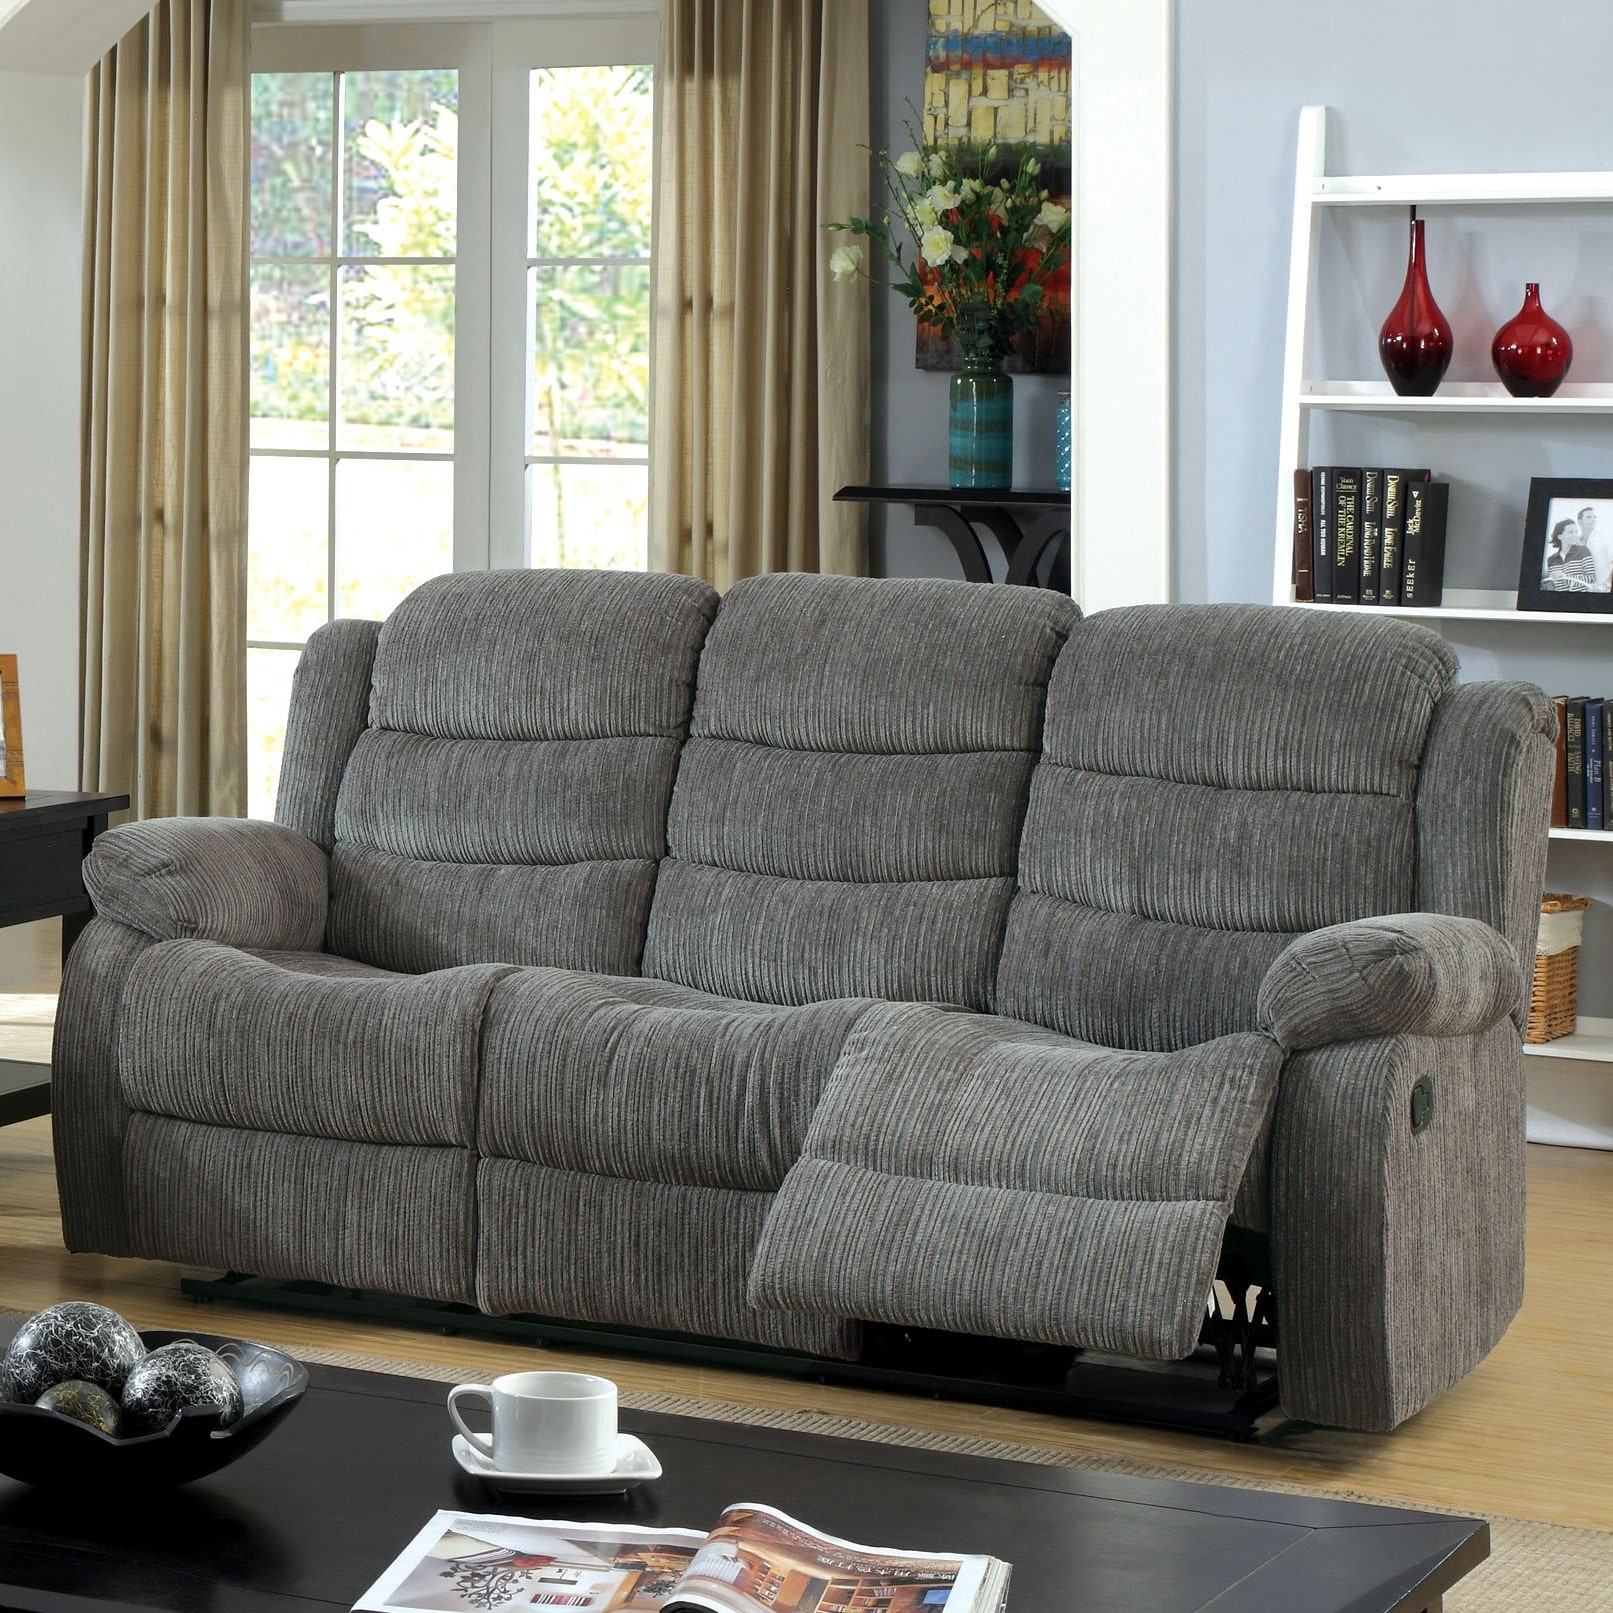 10 Unique American Furniture Warehouse Greensboro Nc | Home Inside Greensboro Nc Sectional Sofas (View 4 of 10)